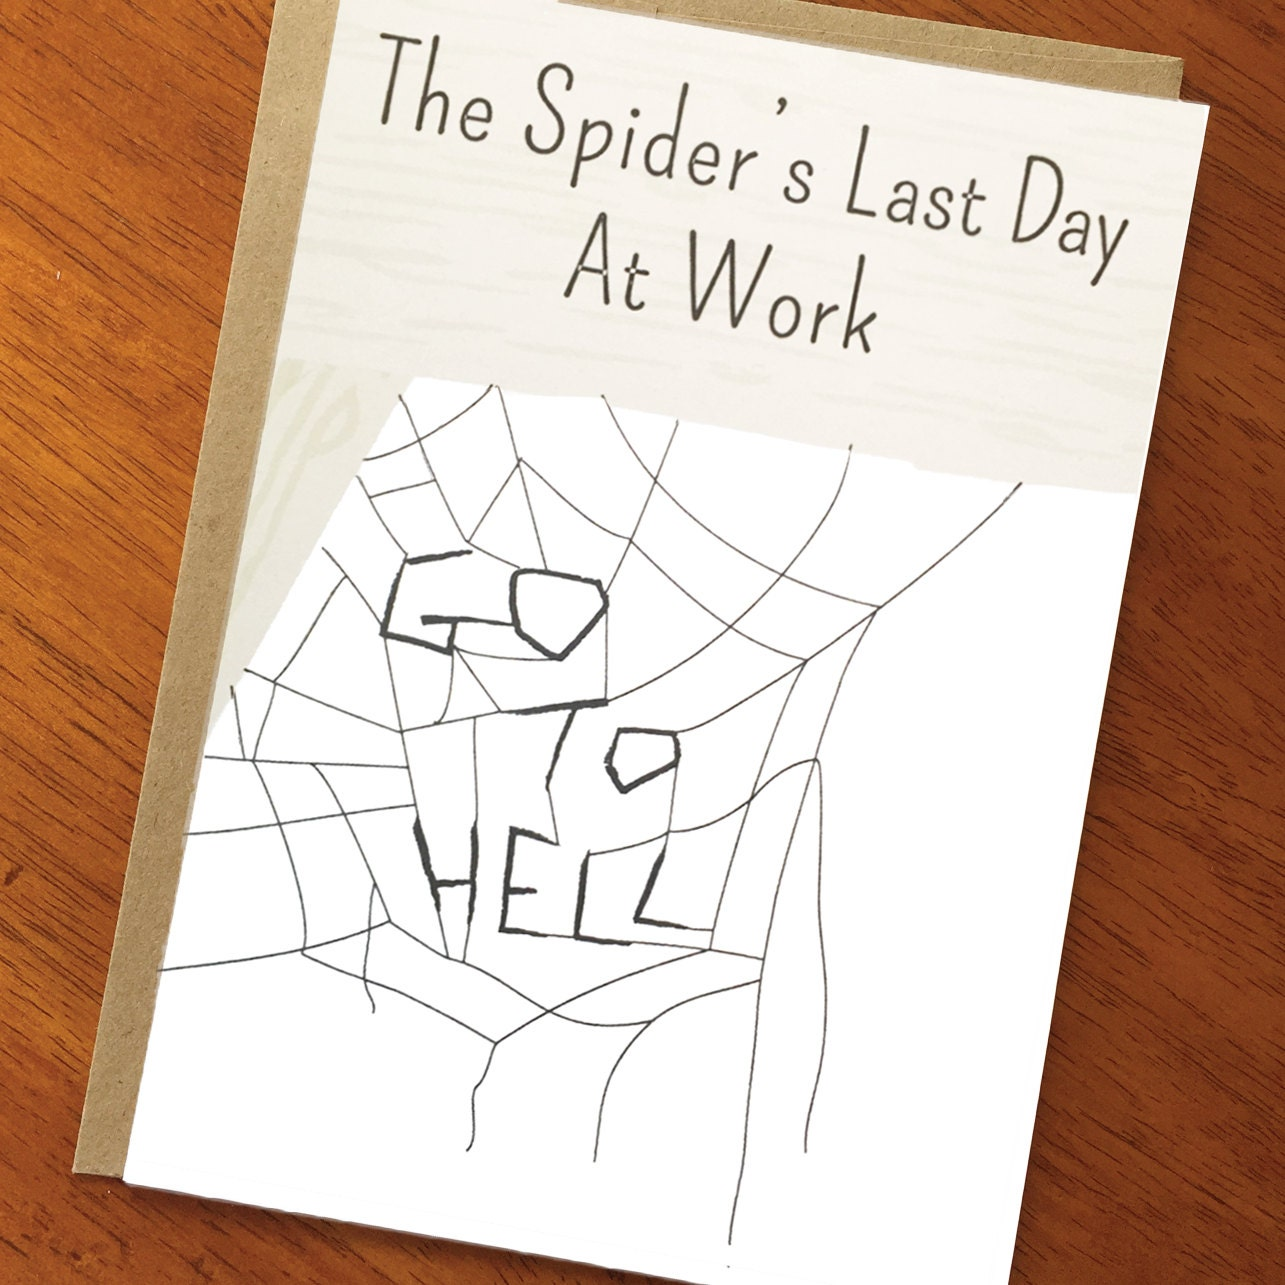 Funny goodbye card spiders last day at work cute zoom kristyandbryce Images